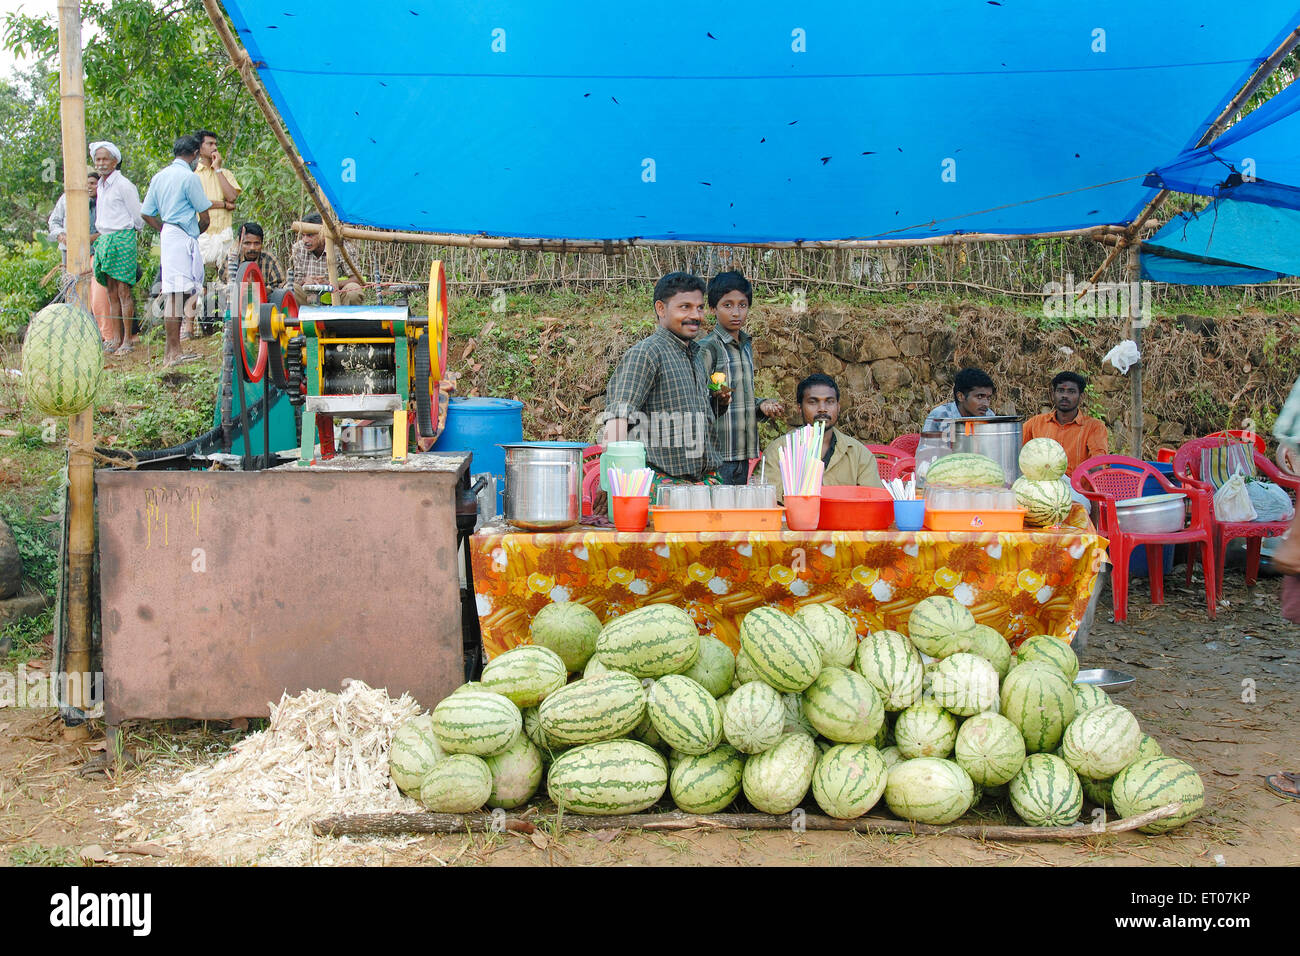 A  temporary juice shop in a village during a festival ; kerala ; India - Stock Image